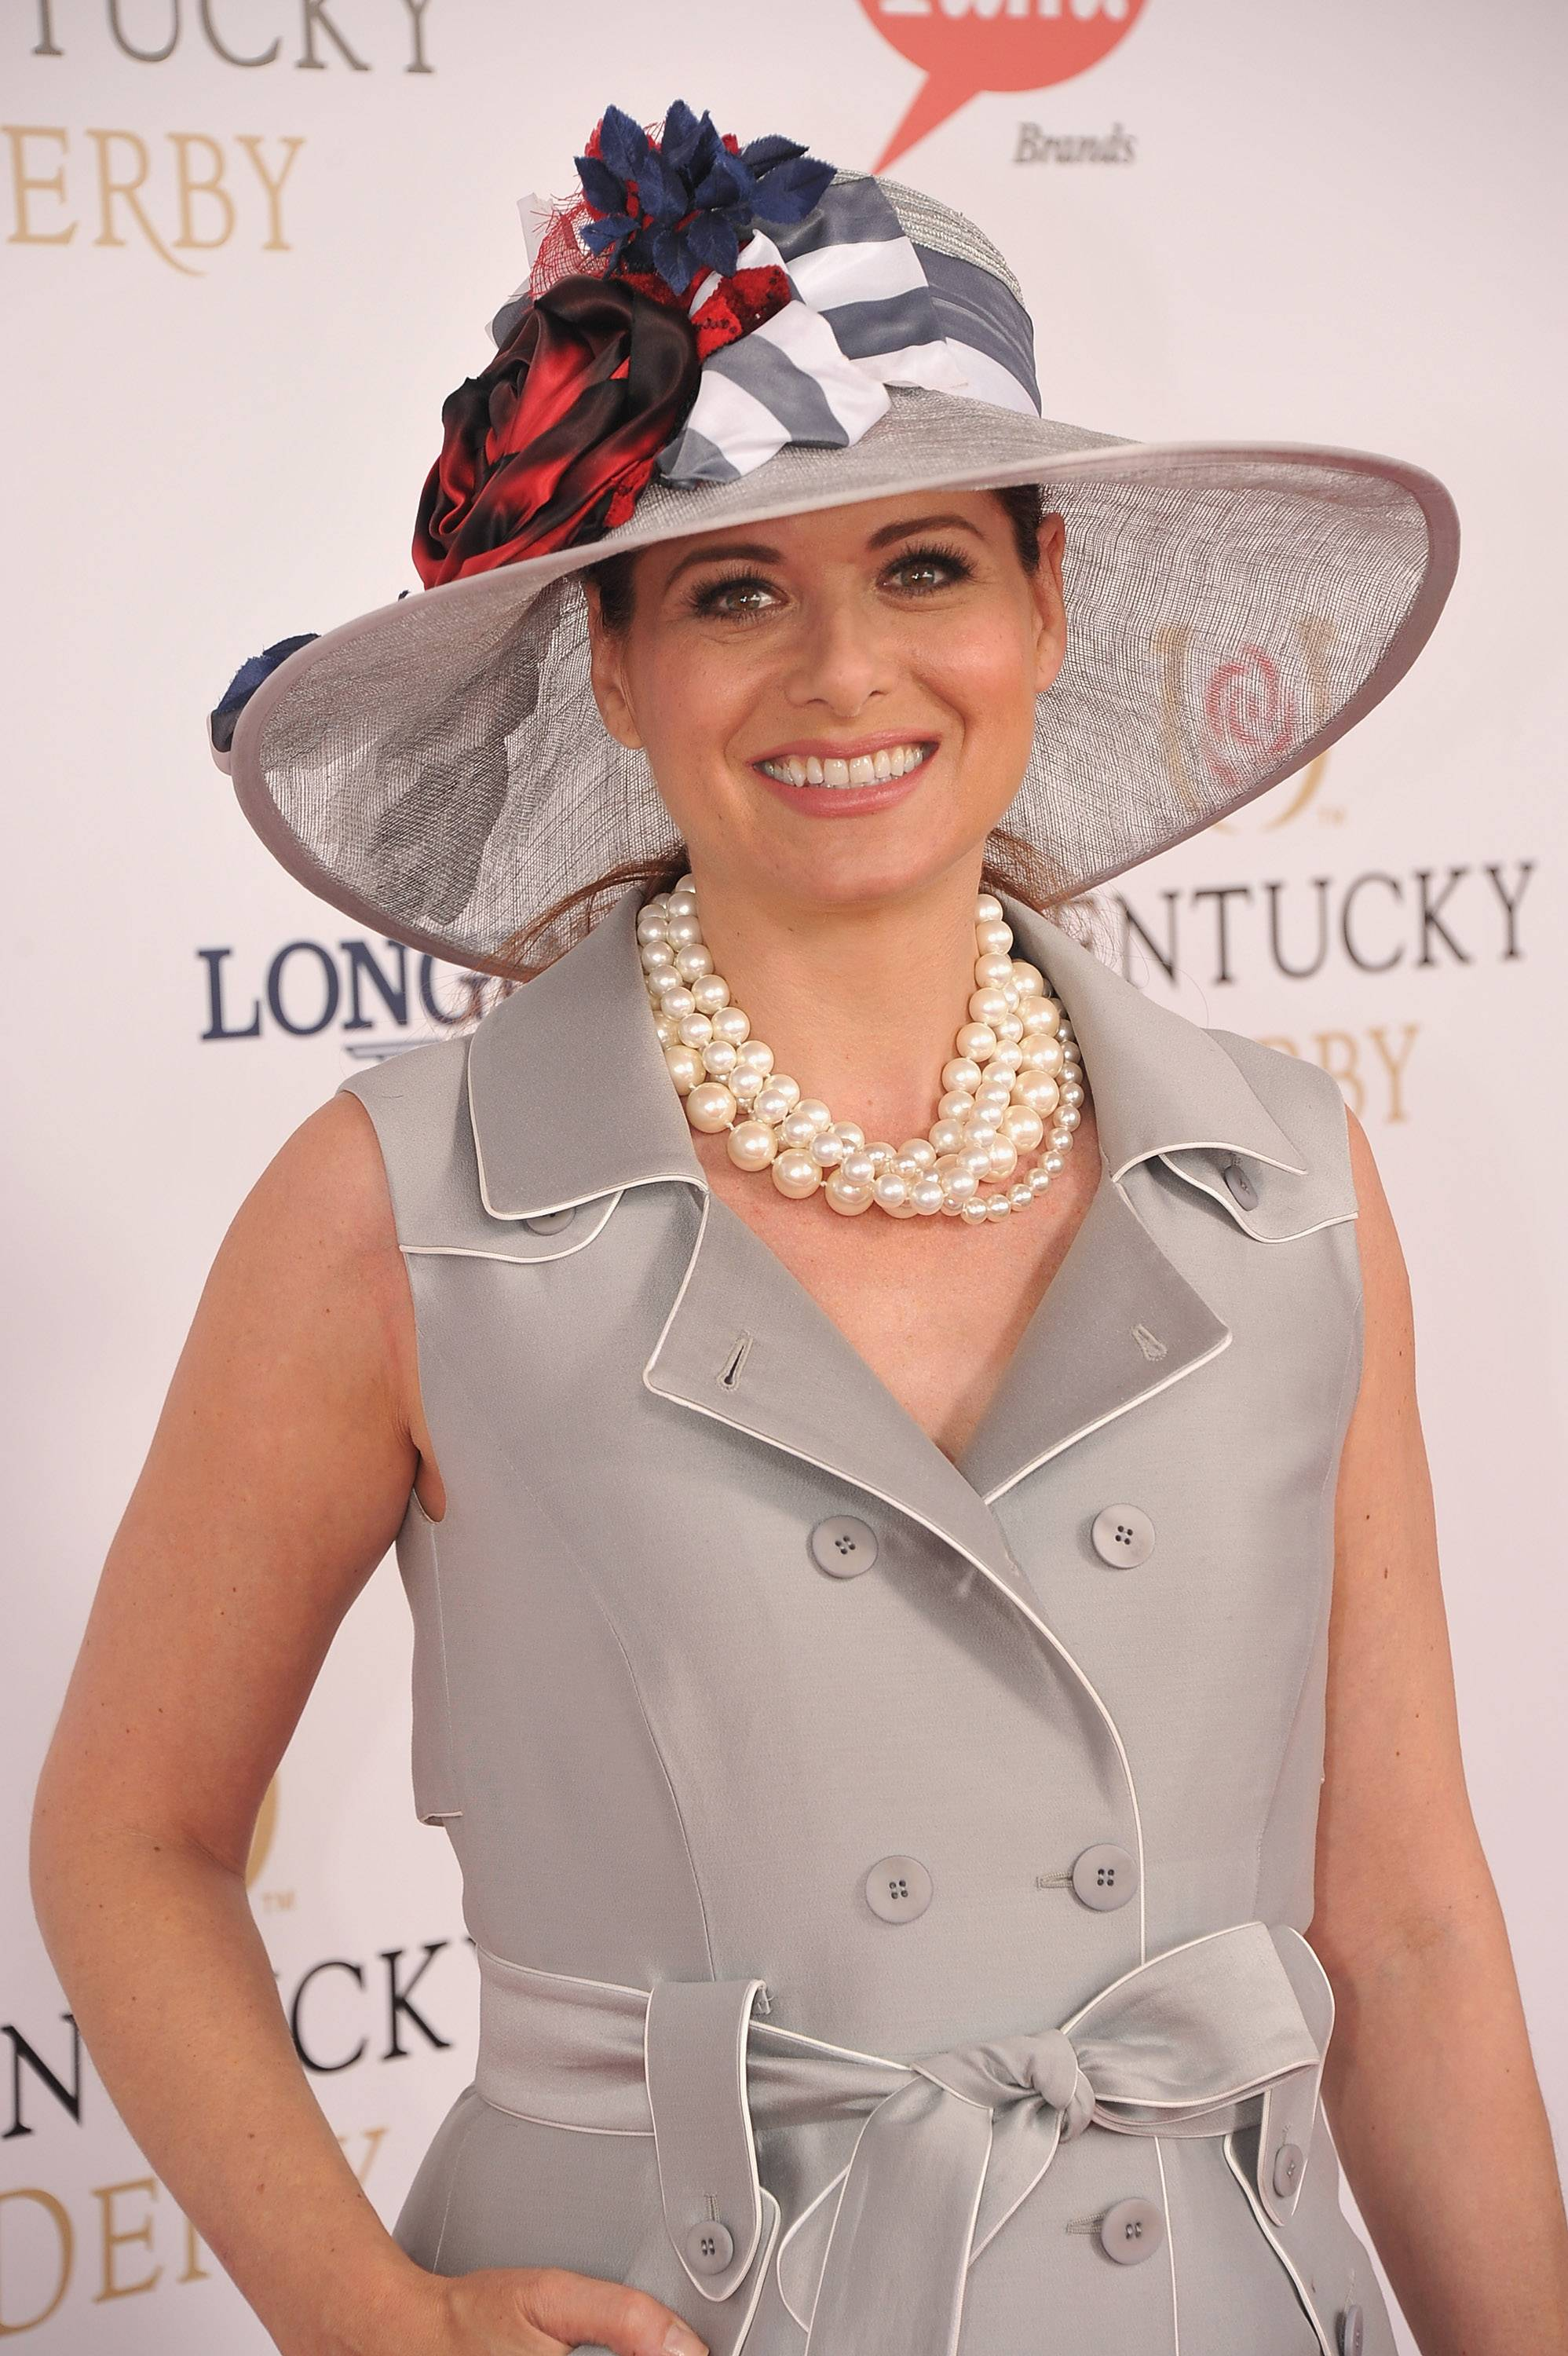 Debra Messing wears GREY GOOSE Cherry Noir Vodka Inspired Hat at the 2012 Kentucky Derby6